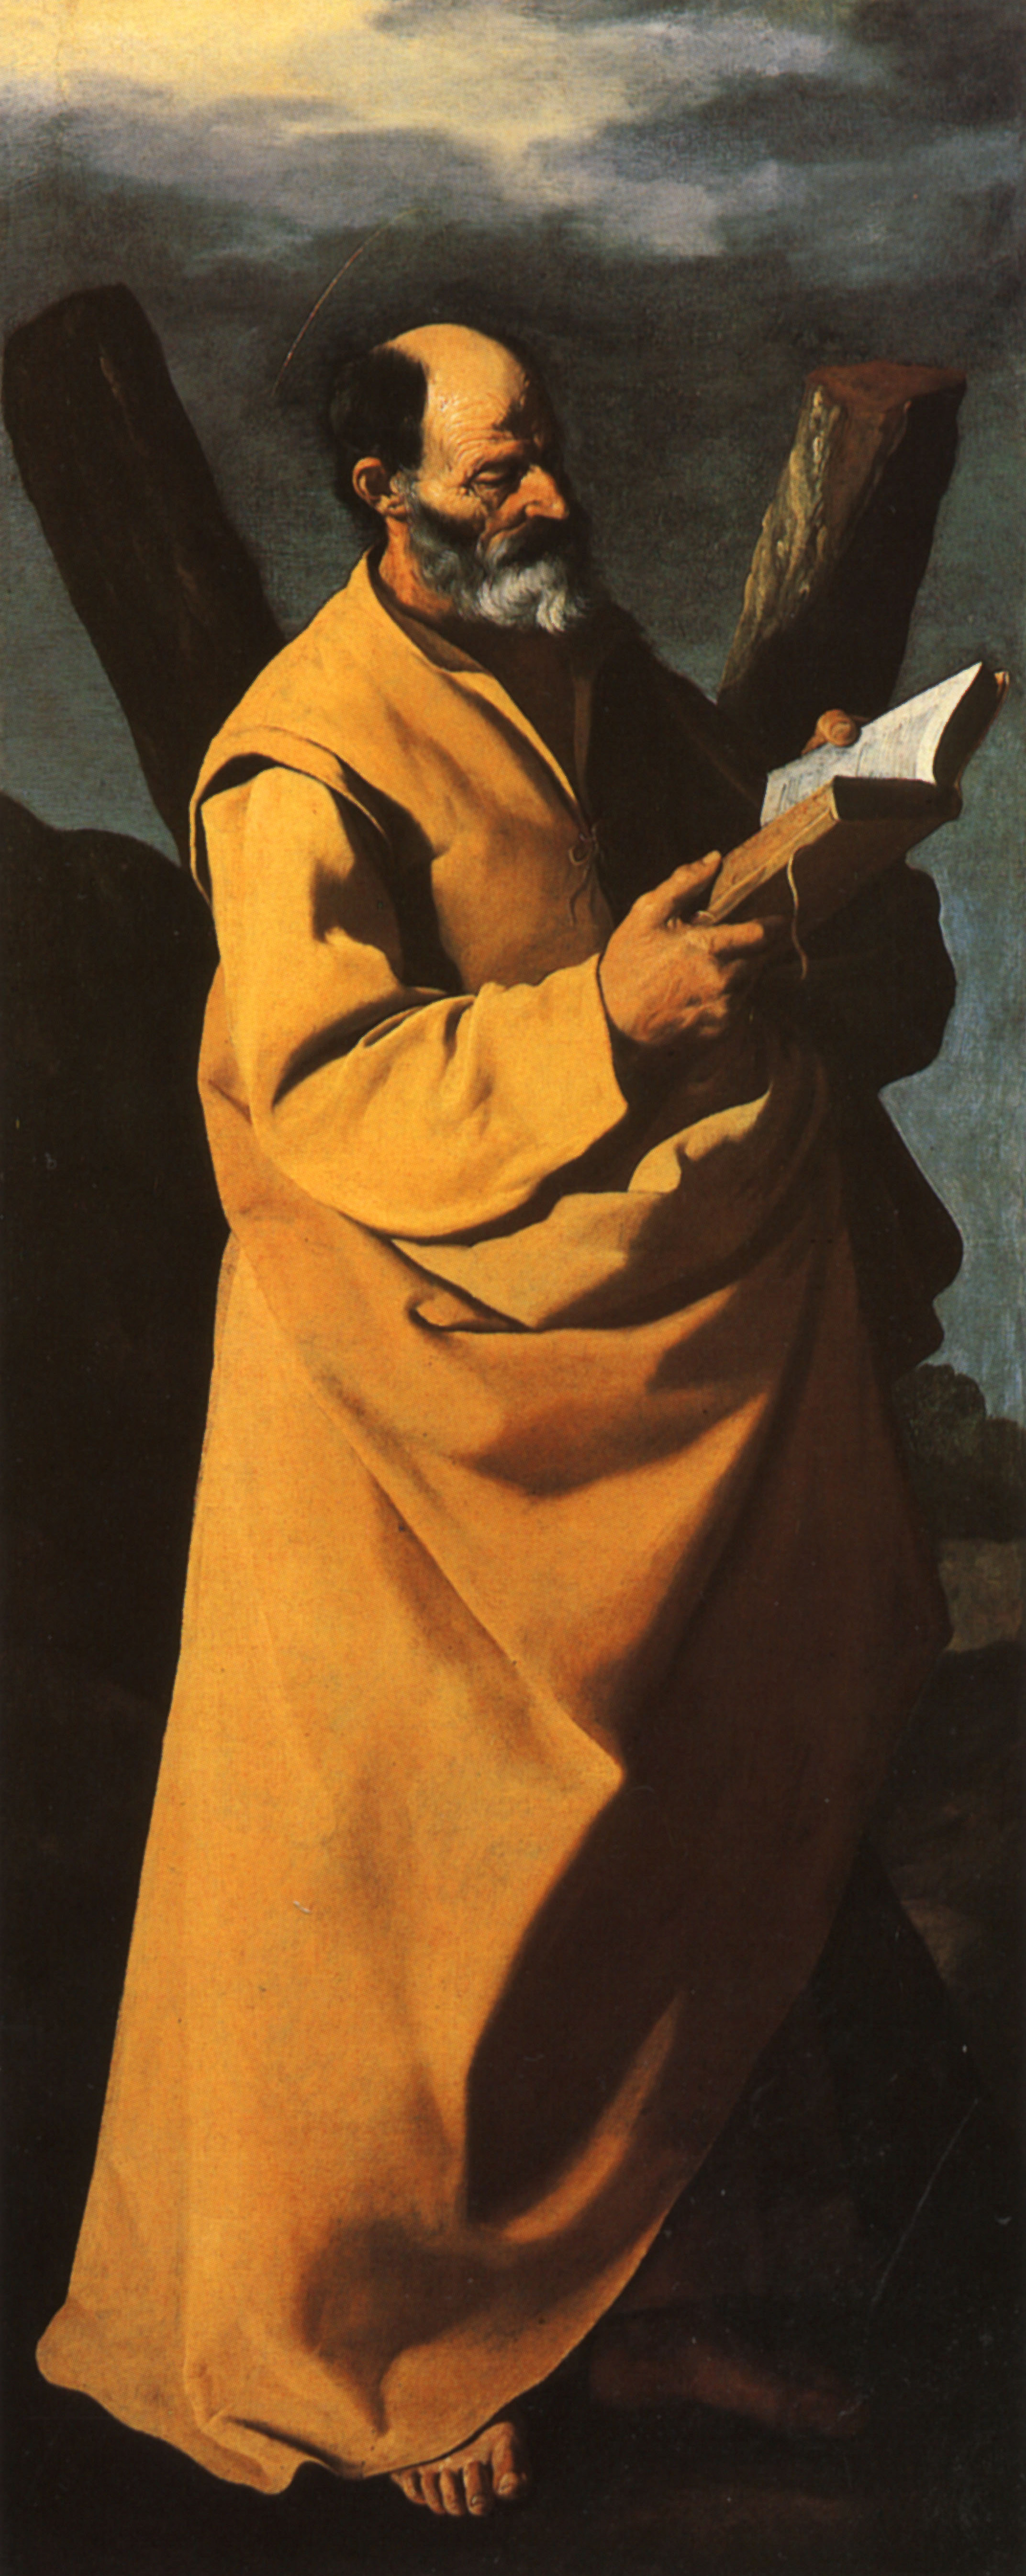 an analysis of the annunciation by francisco de zurbaran St ursula is one of artworks by francisco de zurbaran artwork analysis, large  resolution images, user comments, interesting facts and  the annunciation 0.